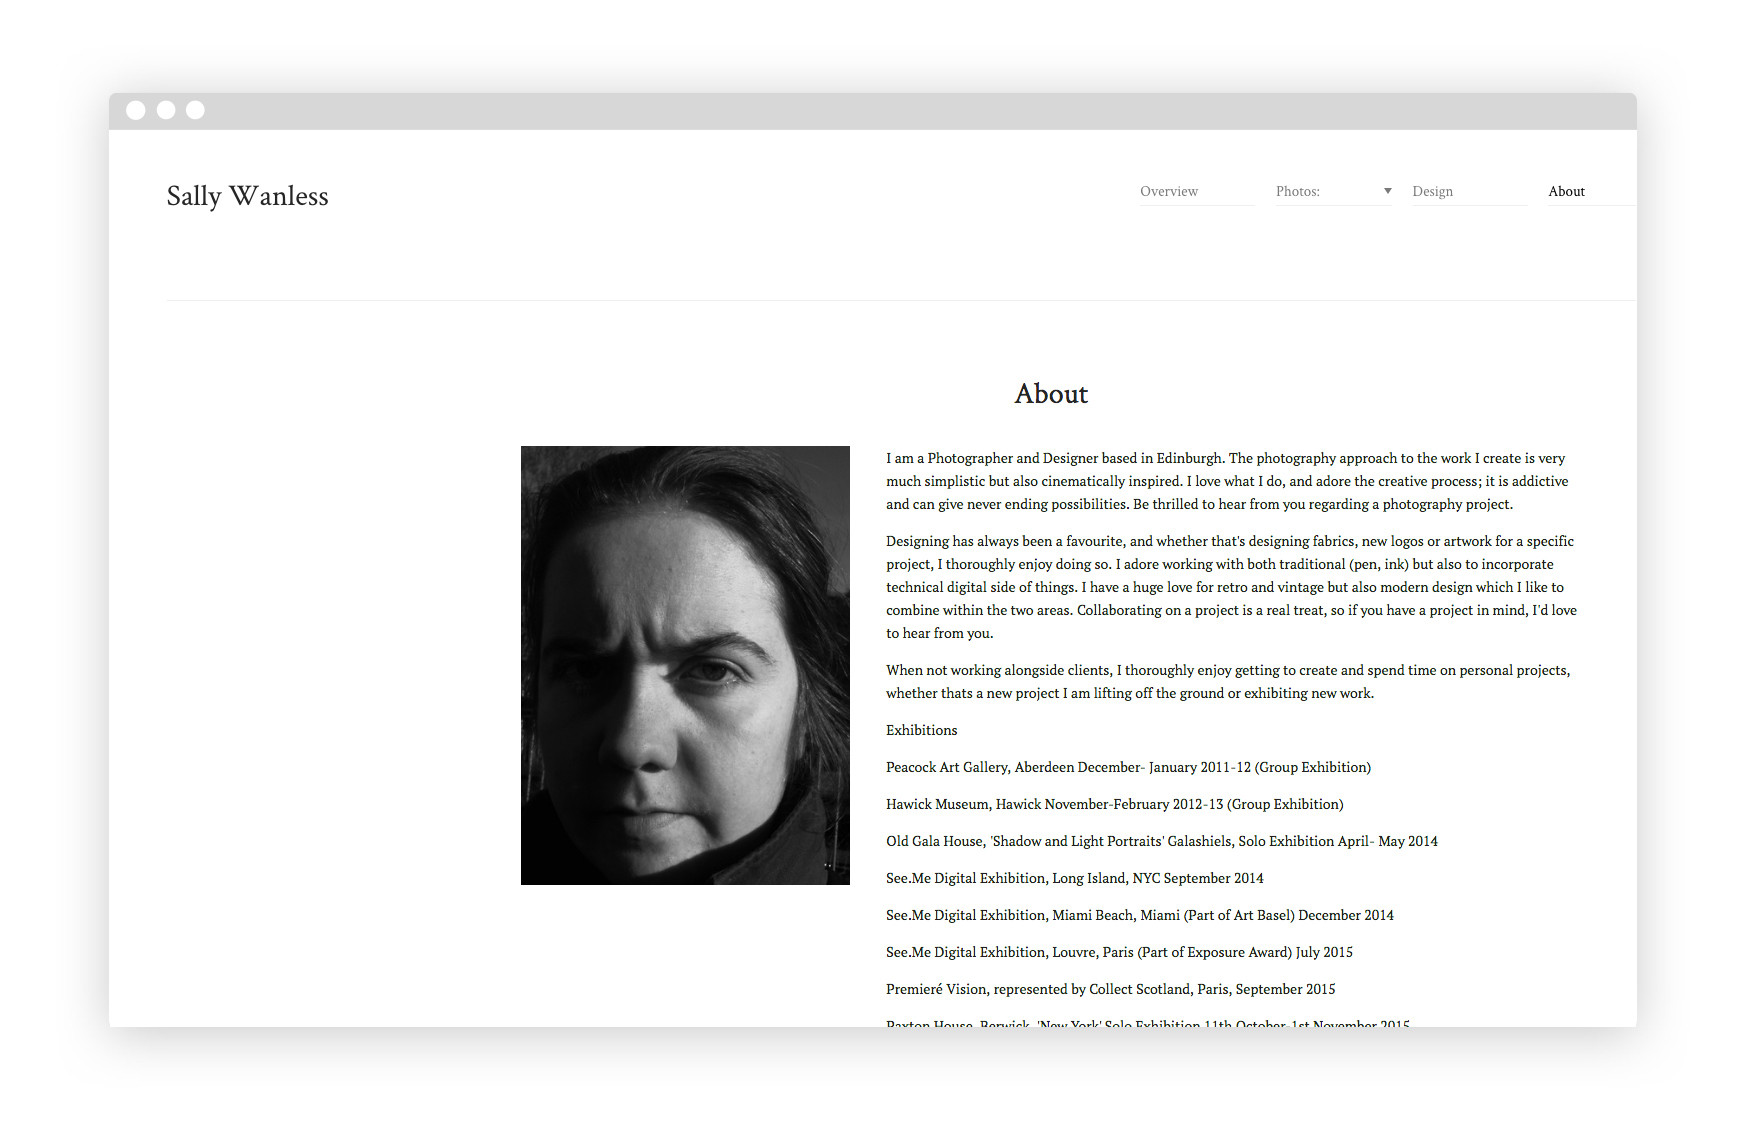 7 Steps for Writing Your Portfolio's Biography 'About Me' Page